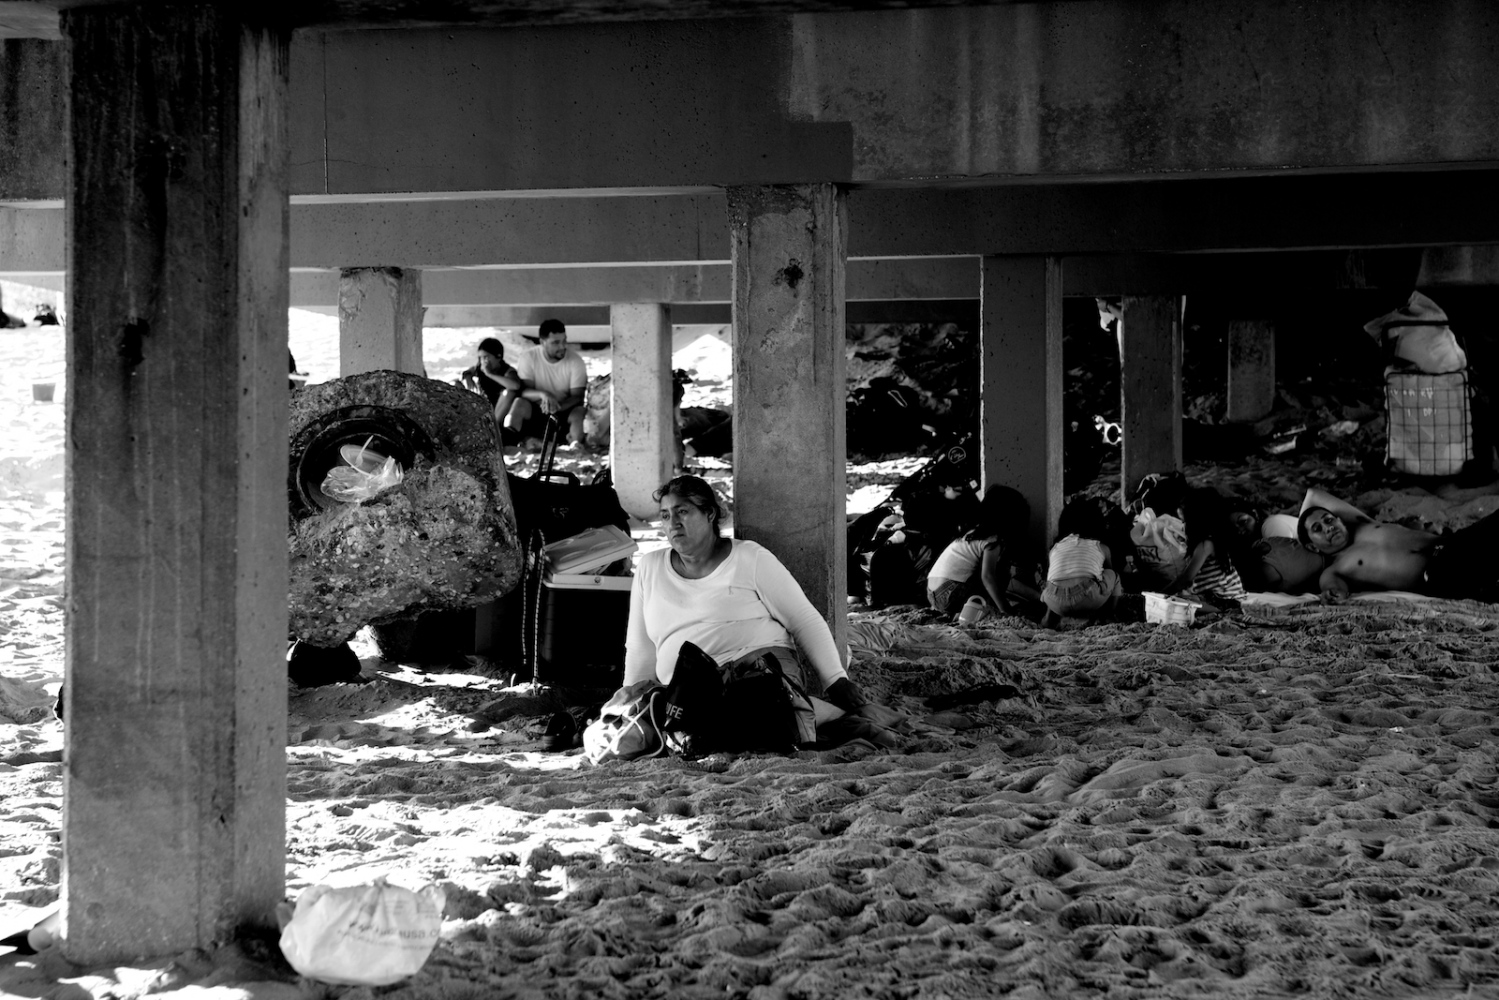 Alone Under the Pier. Coney Island, NY, Summer 2011